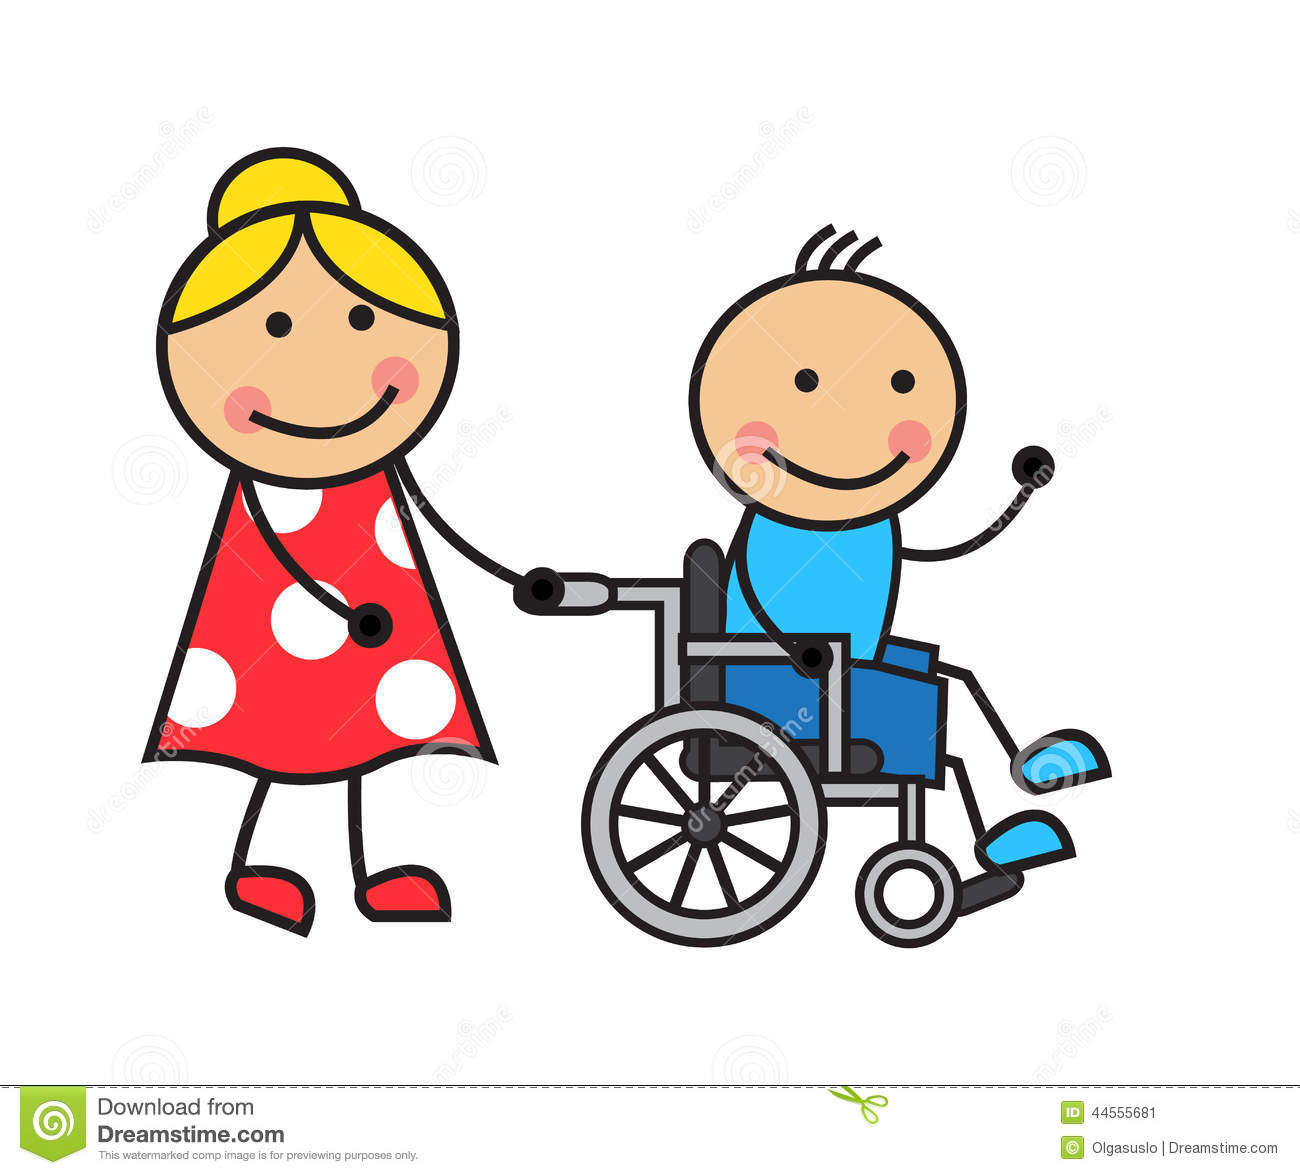 Stock Illustration Cartoon Man Wheelchair Woman Wheels Image44555681 additionally Stock Illustration Underwater Ocean Life Under Waves Hand Drawn Illustration Corals Algae Seaweed Golden Sand Swimming Fish Image41011617 moreover Block Of Flats Clipart as well Royalty Free Stock Images Suv Cartoon Car Illustration Featuring Set Colored Cars Isolated White Background Eps File Available Image30706569 likewise Music Coloring Pages. on octopus playing clip art cartoon